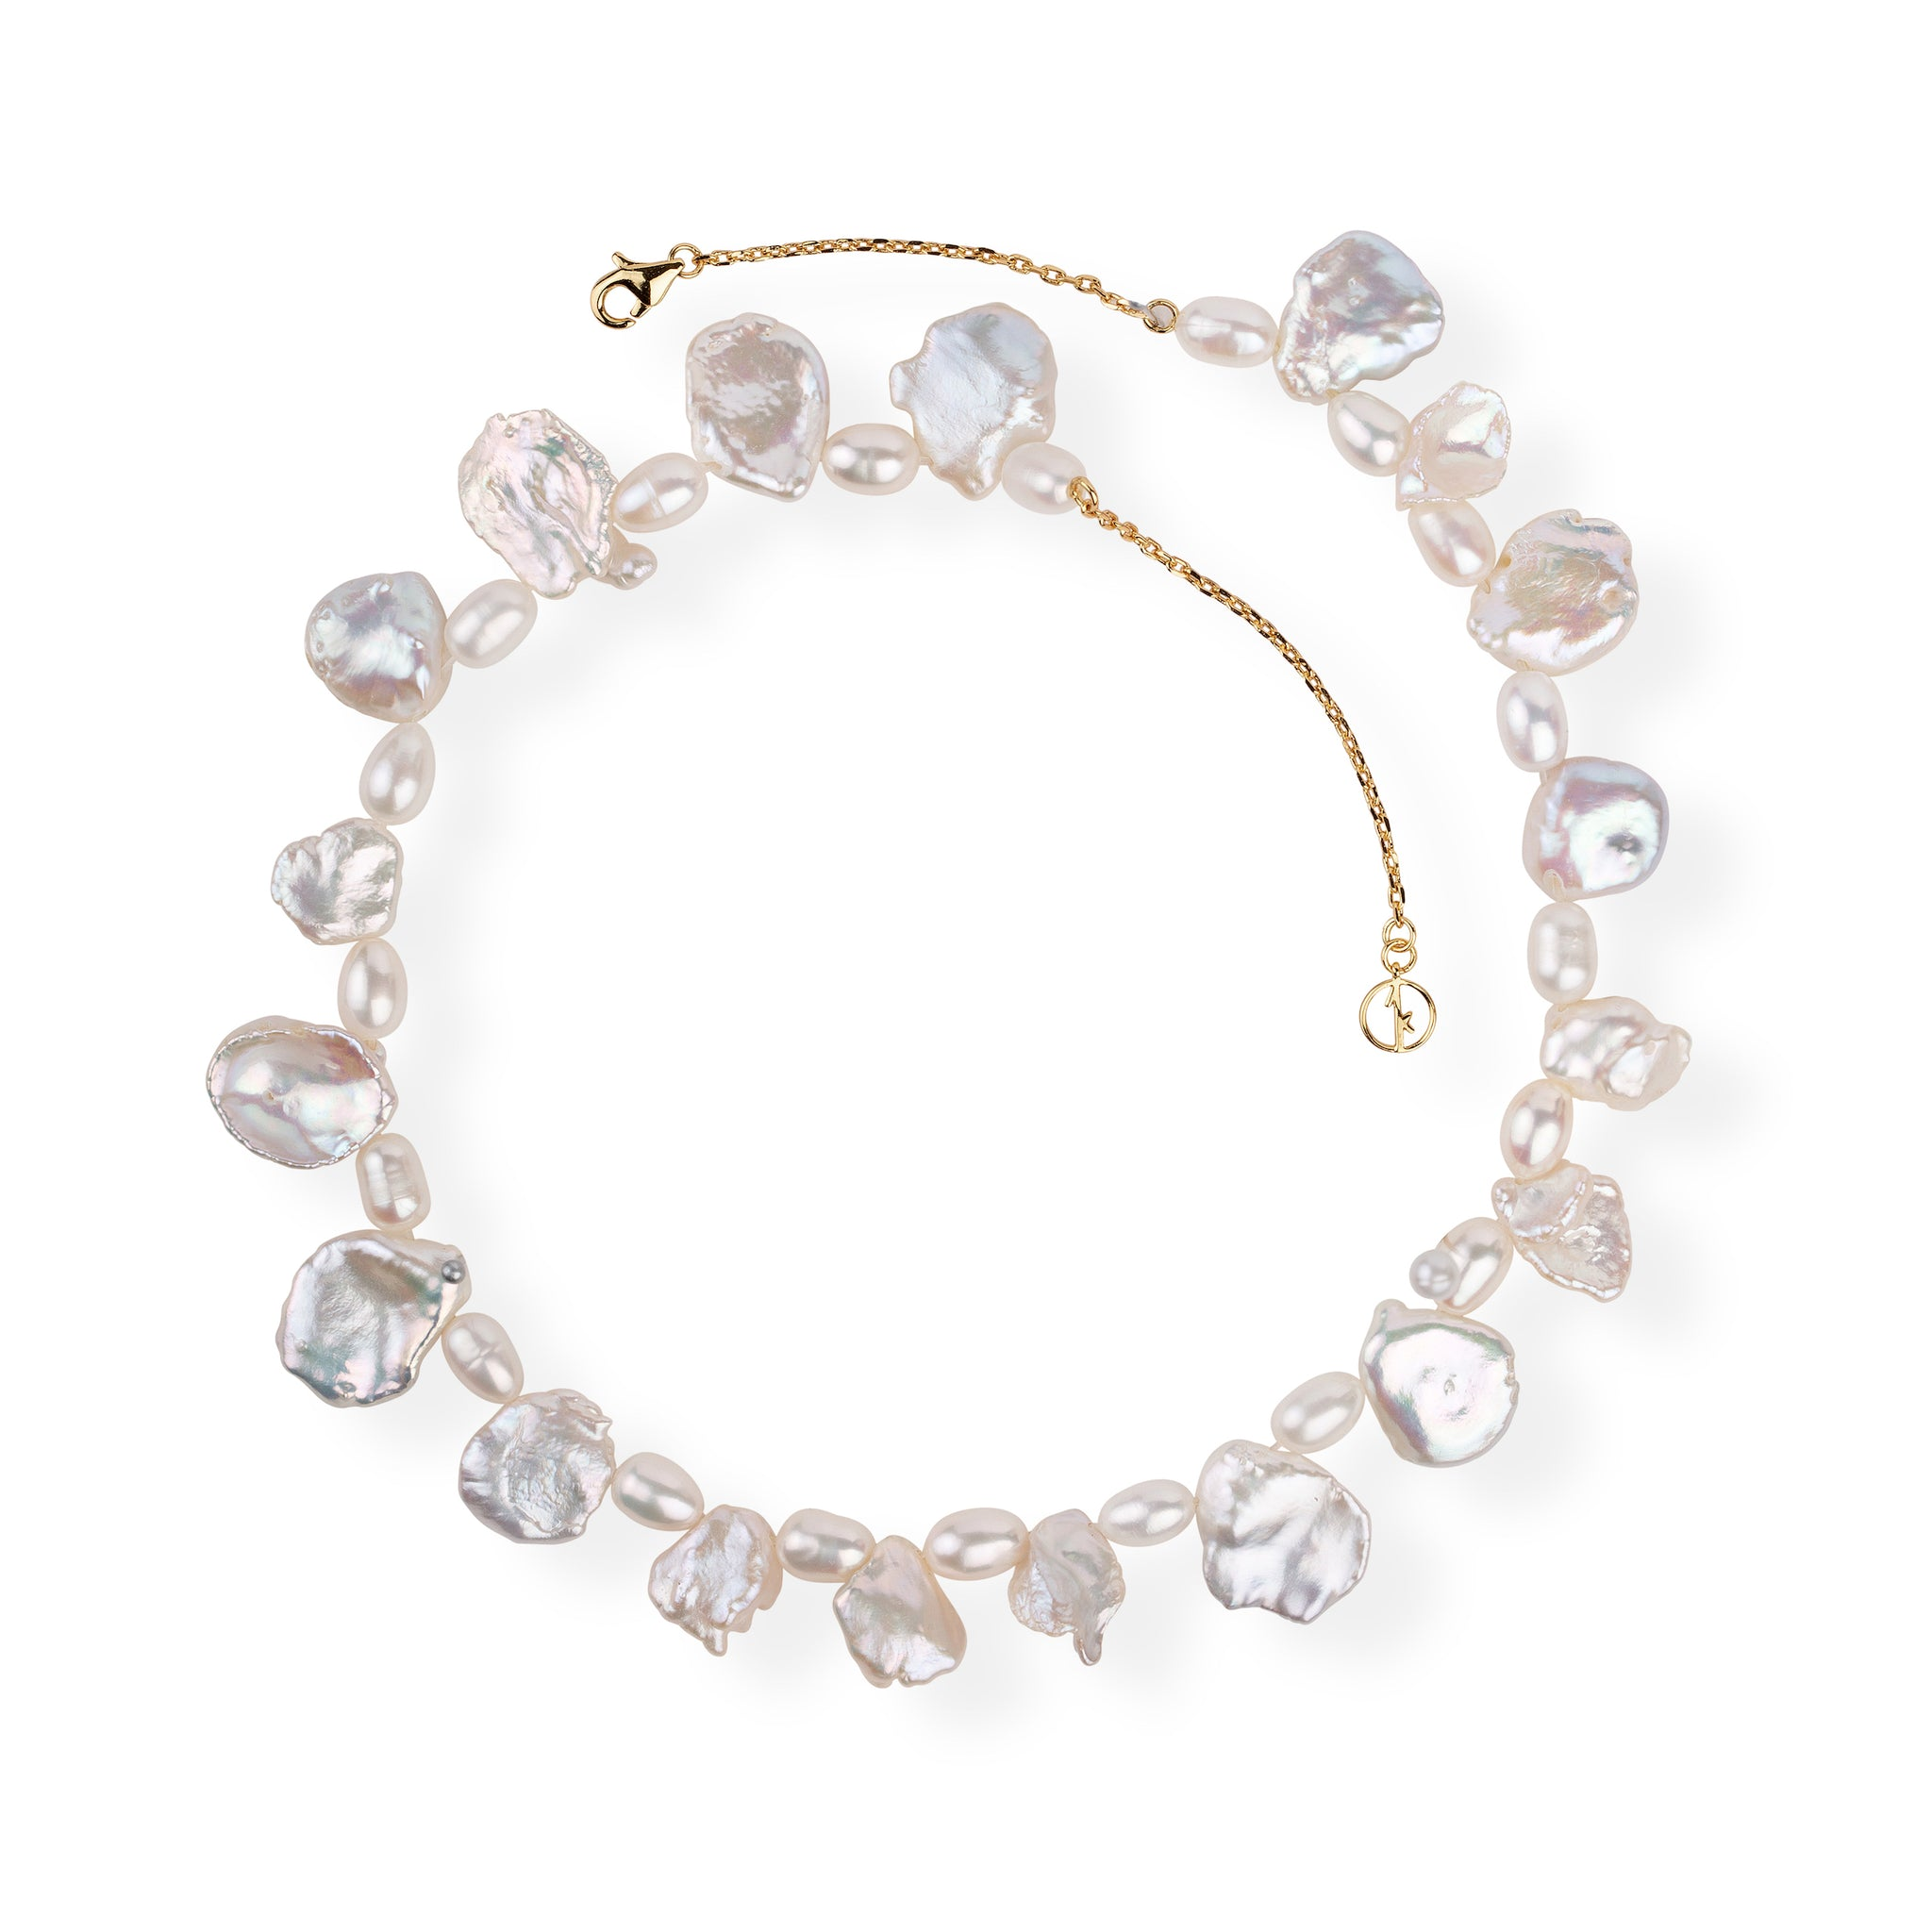 ANISSA KERMICHE - SHELLEY NECKLACE